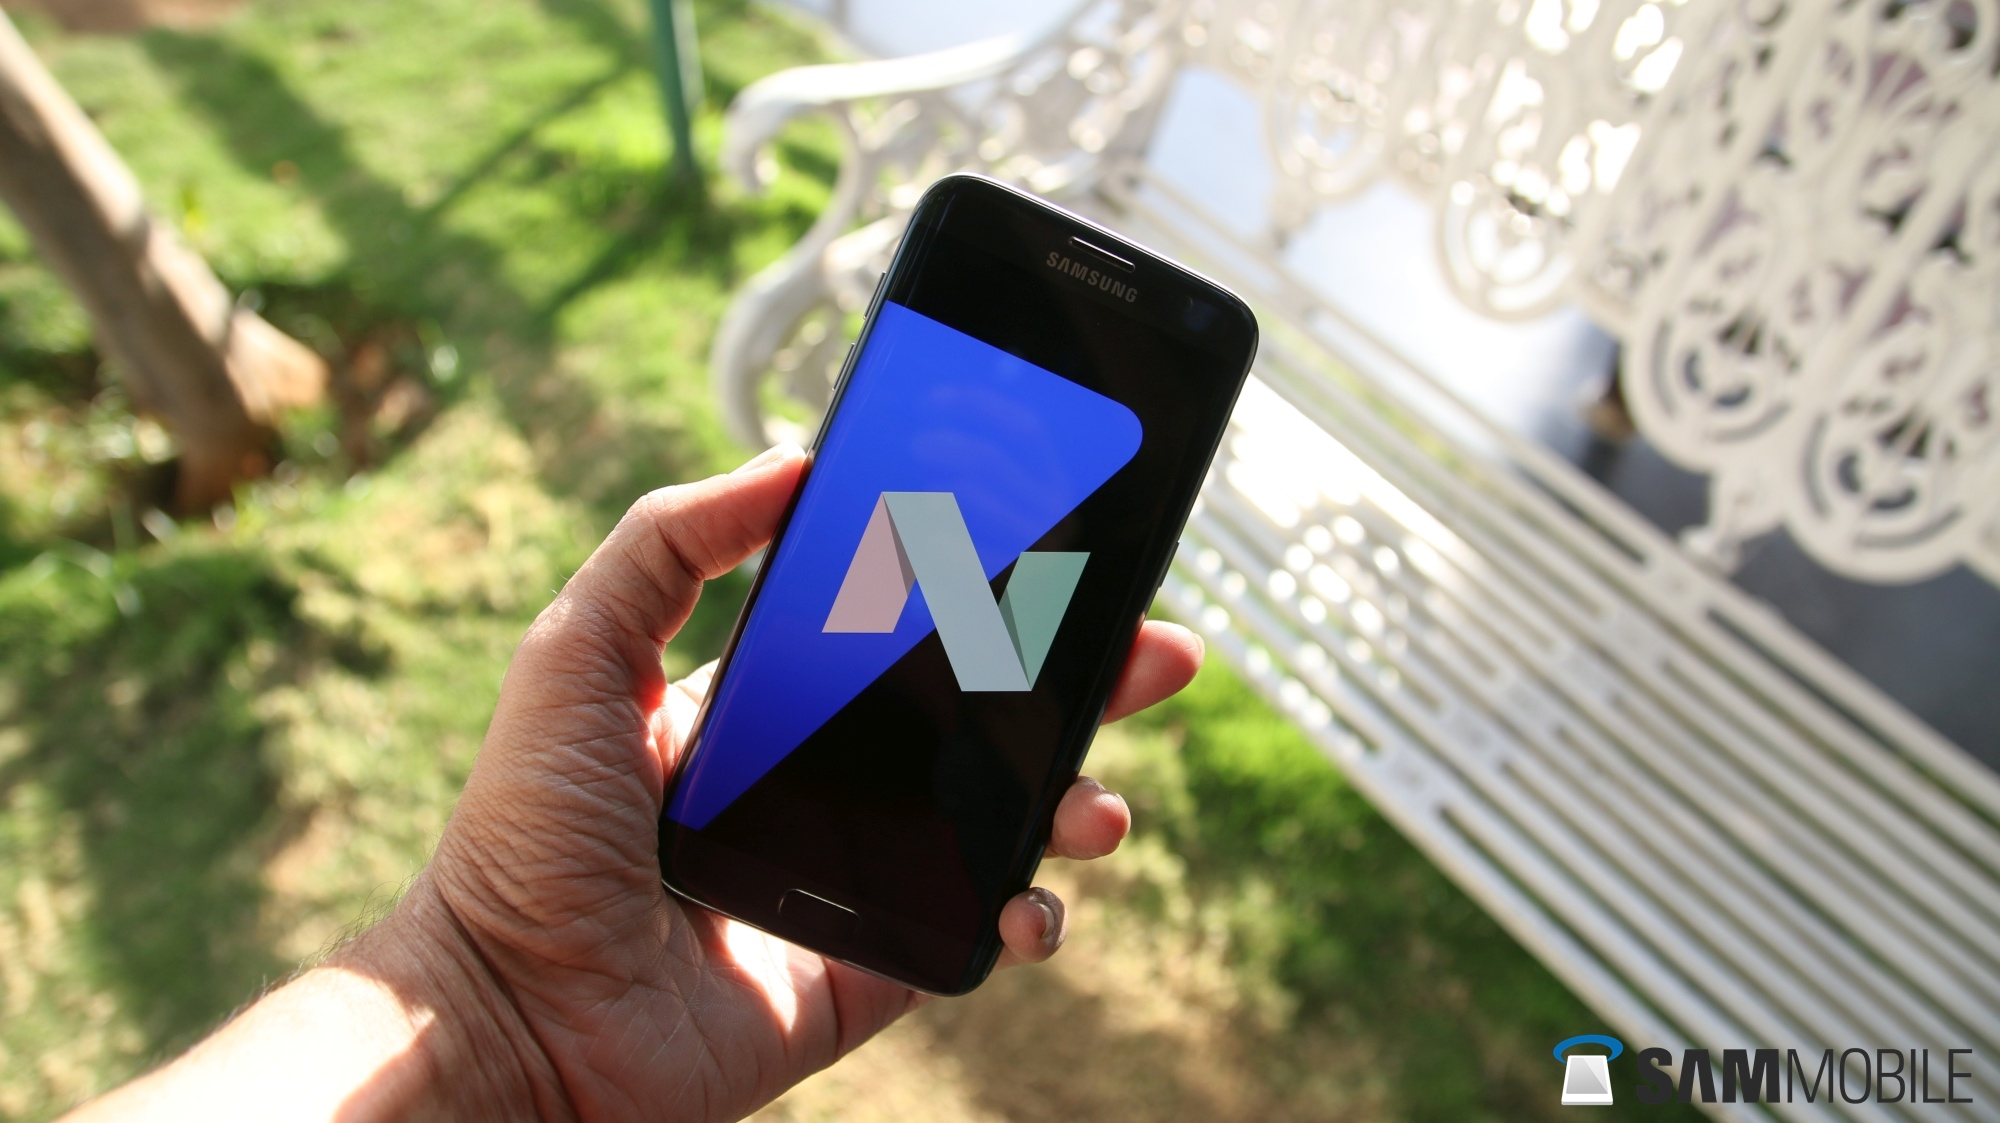 Galaxy S7 and Galaxy S7 edge receive Nougat on several Canadian